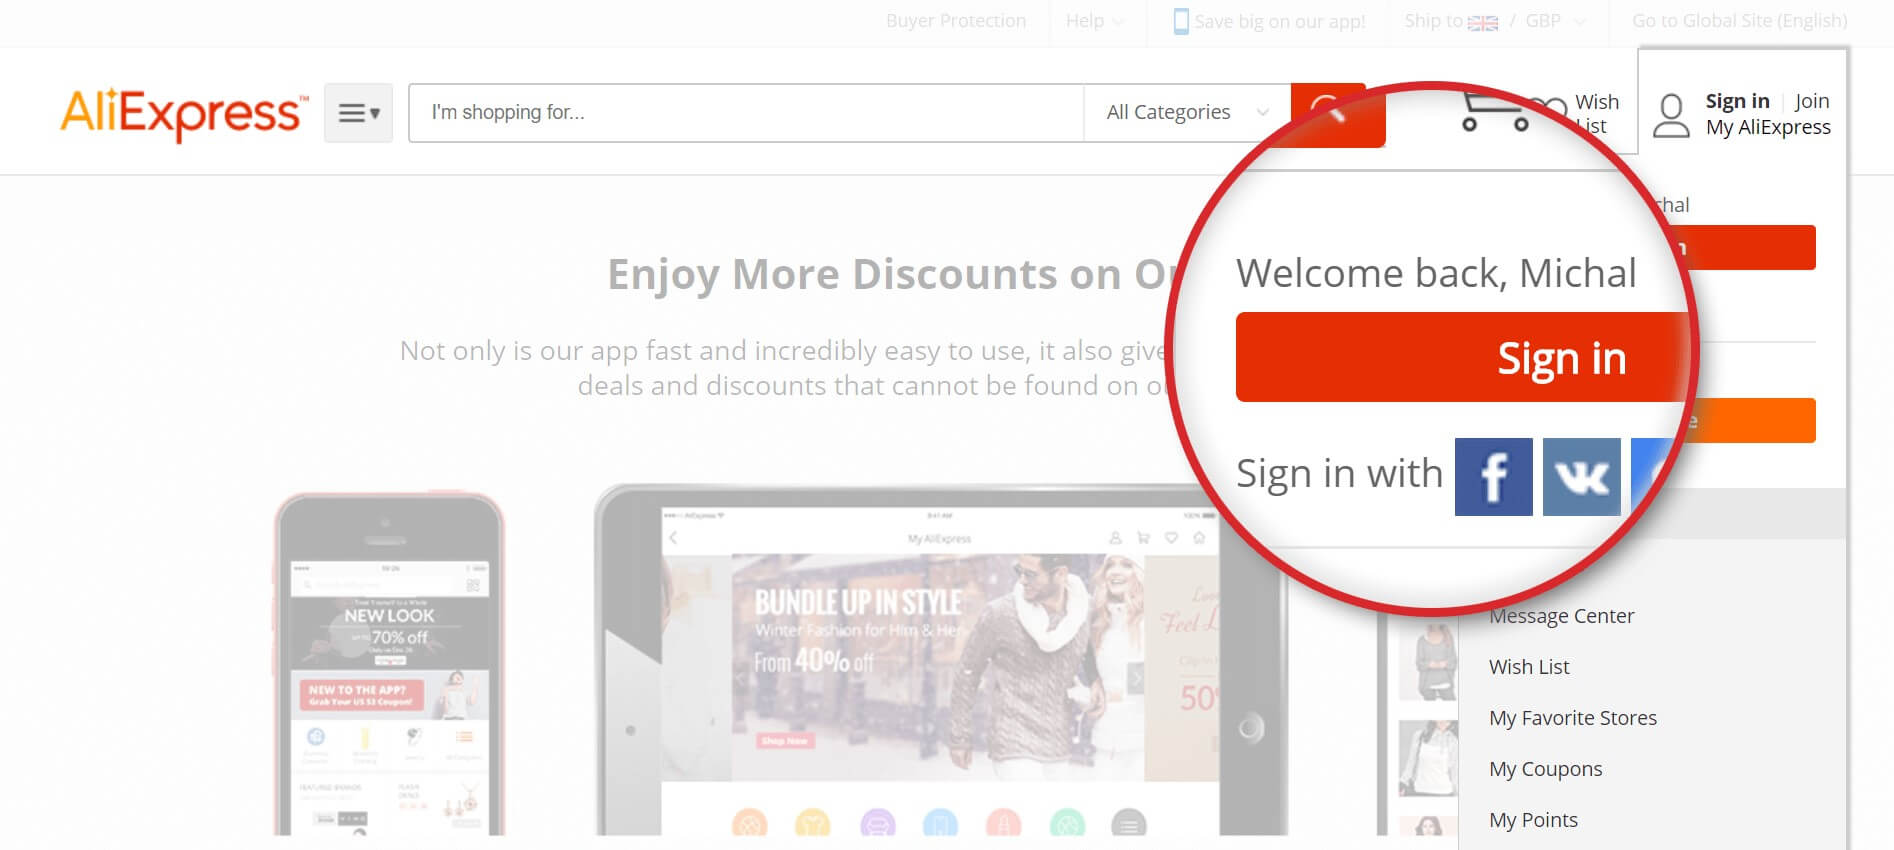 aliexpress rules based content personalization